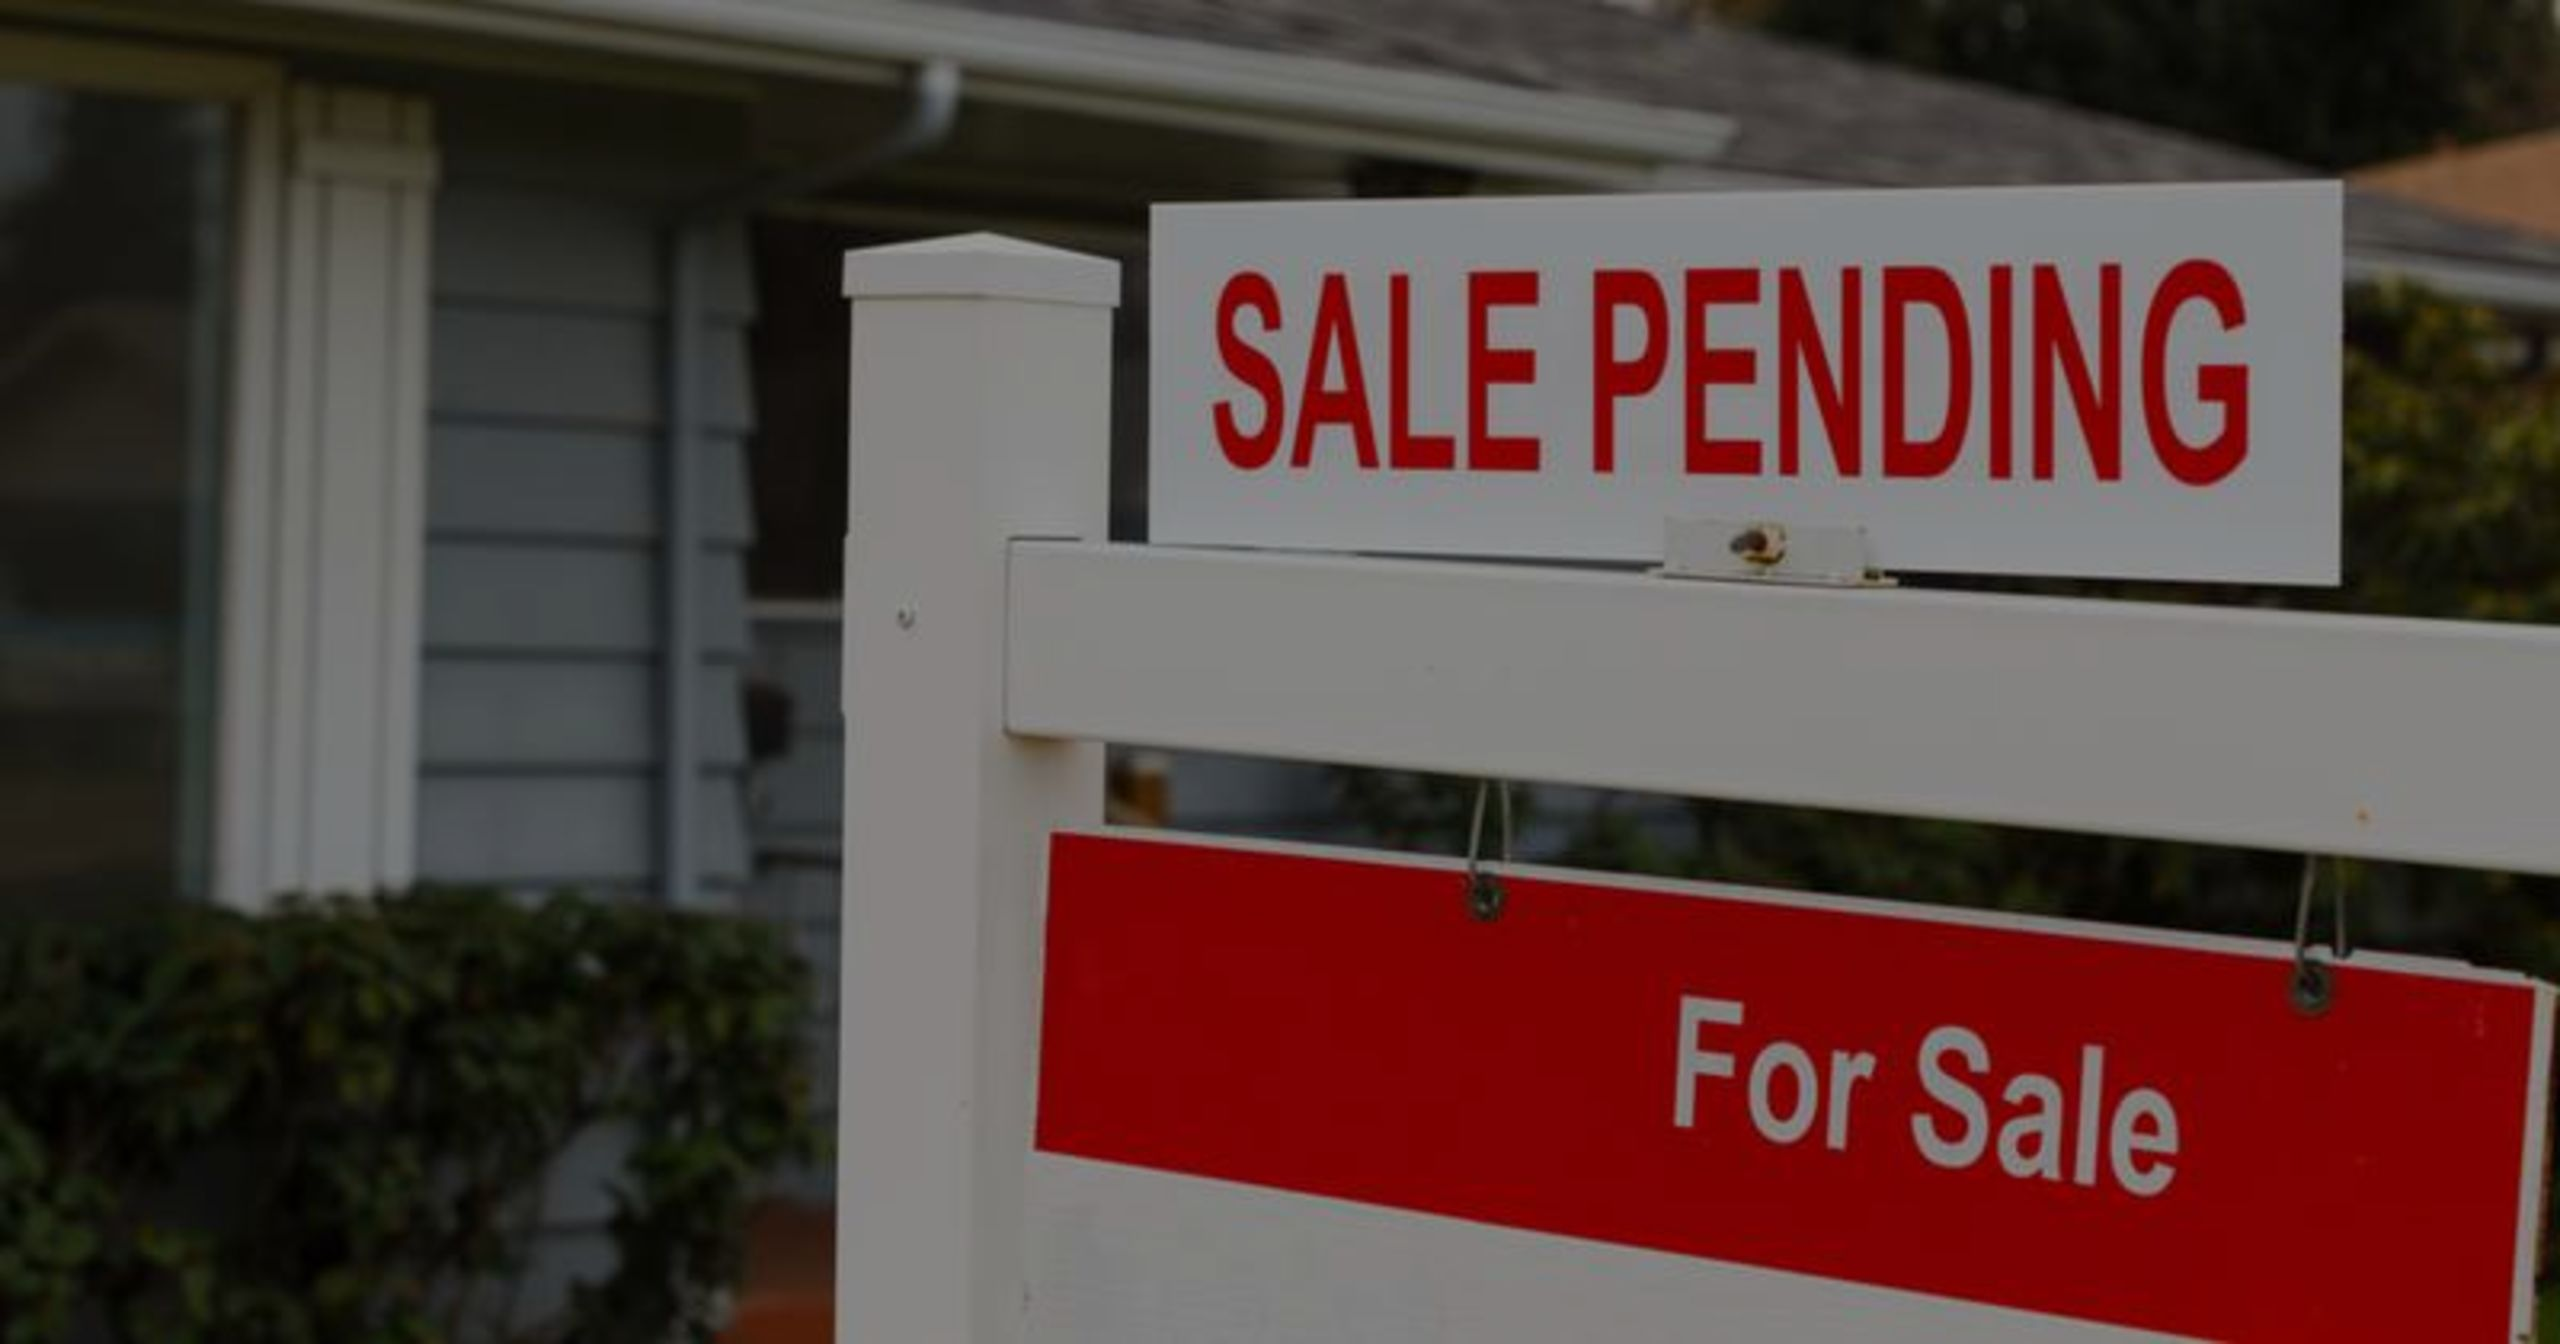 MARKET TRENDS: WHAT'S IN STORE FOR THE SPRING HOUSING MARKET?